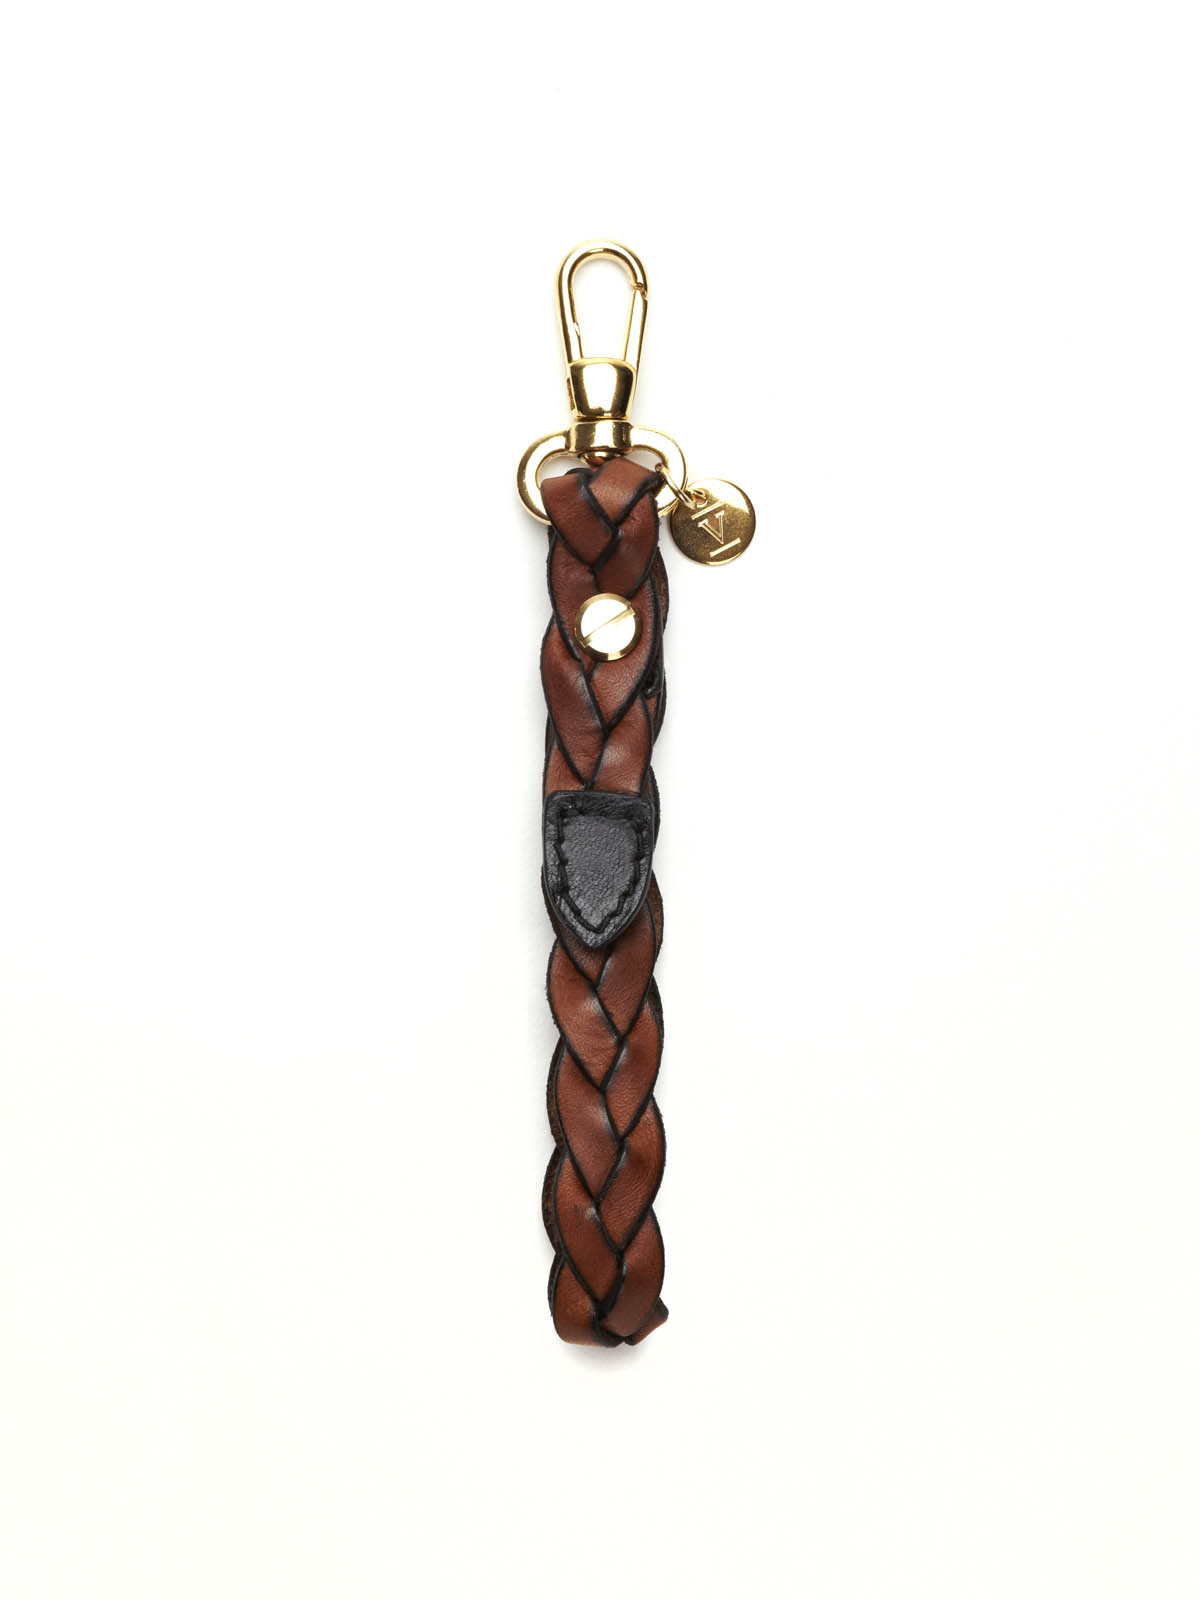 Keyring pendant in braided leather